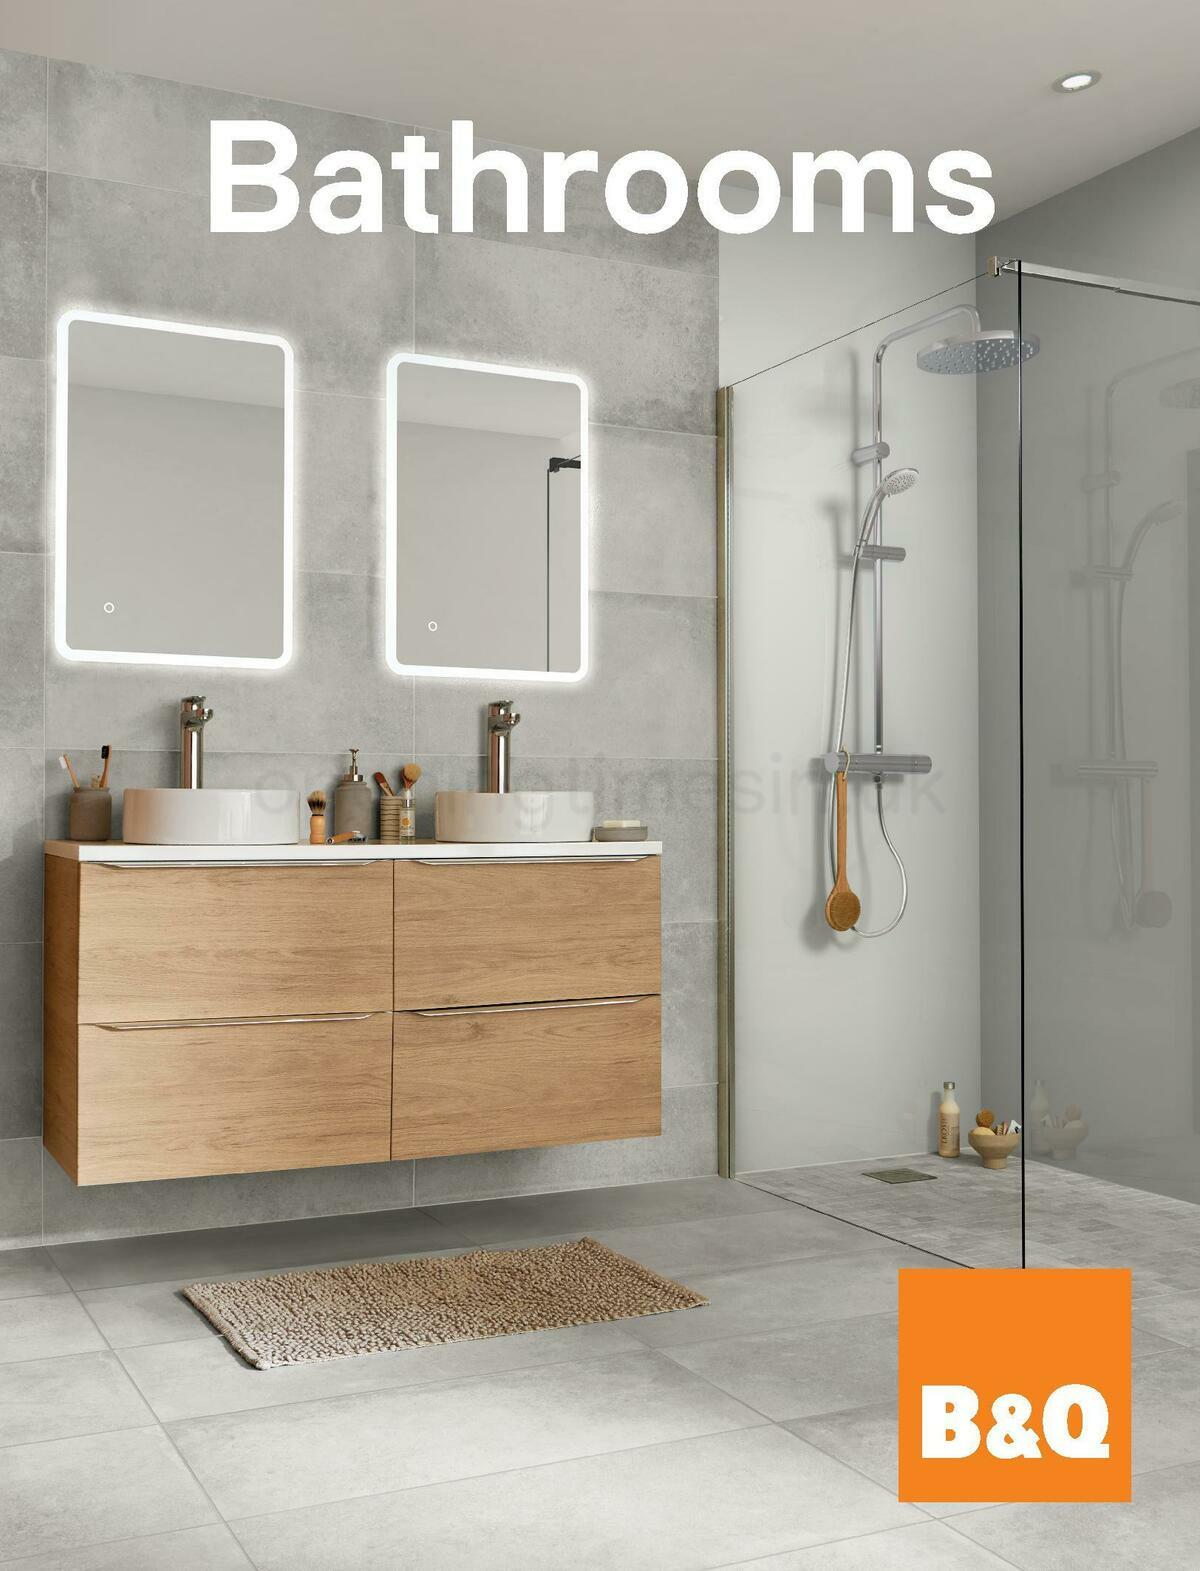 B&Q Bathroom Collections Offers from May 1